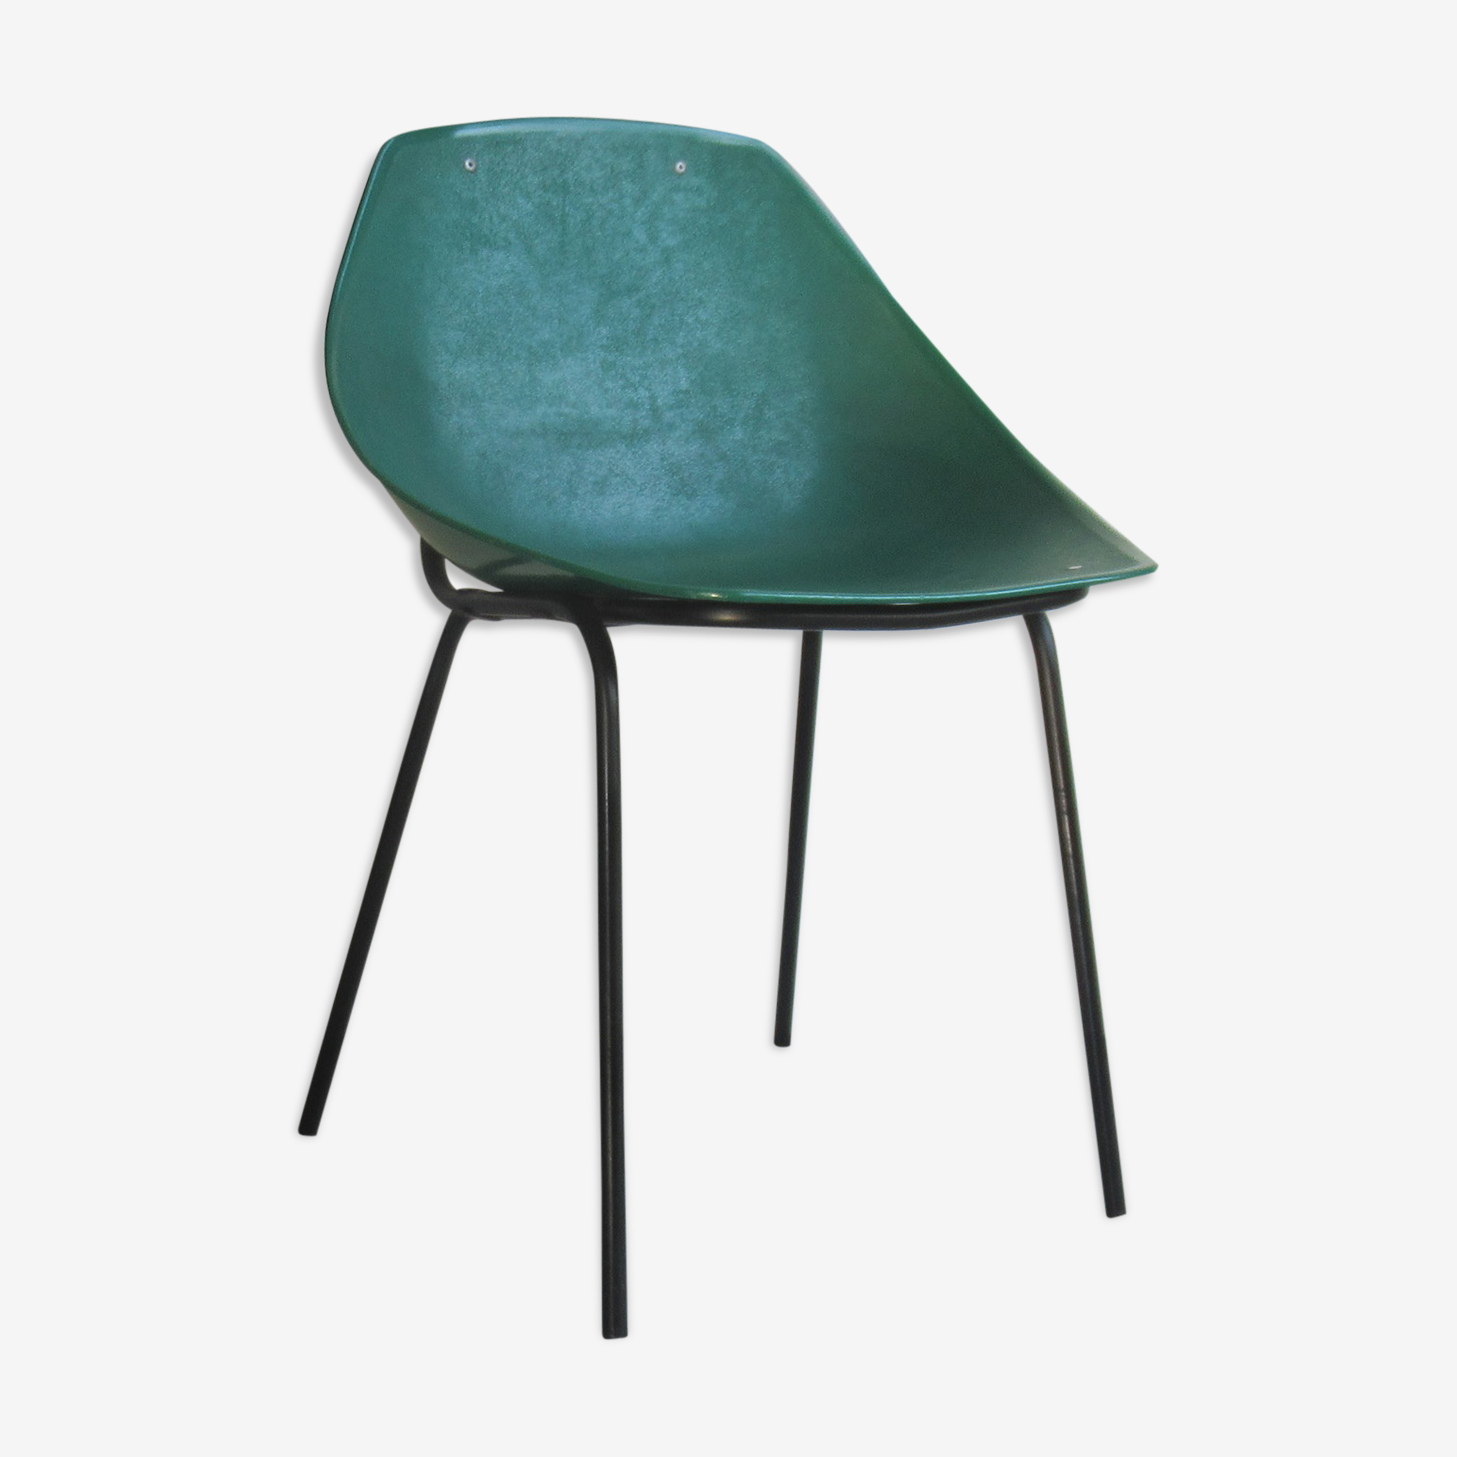 Set of 3 shell chairs Pierre Guariche for Meurop, 1961